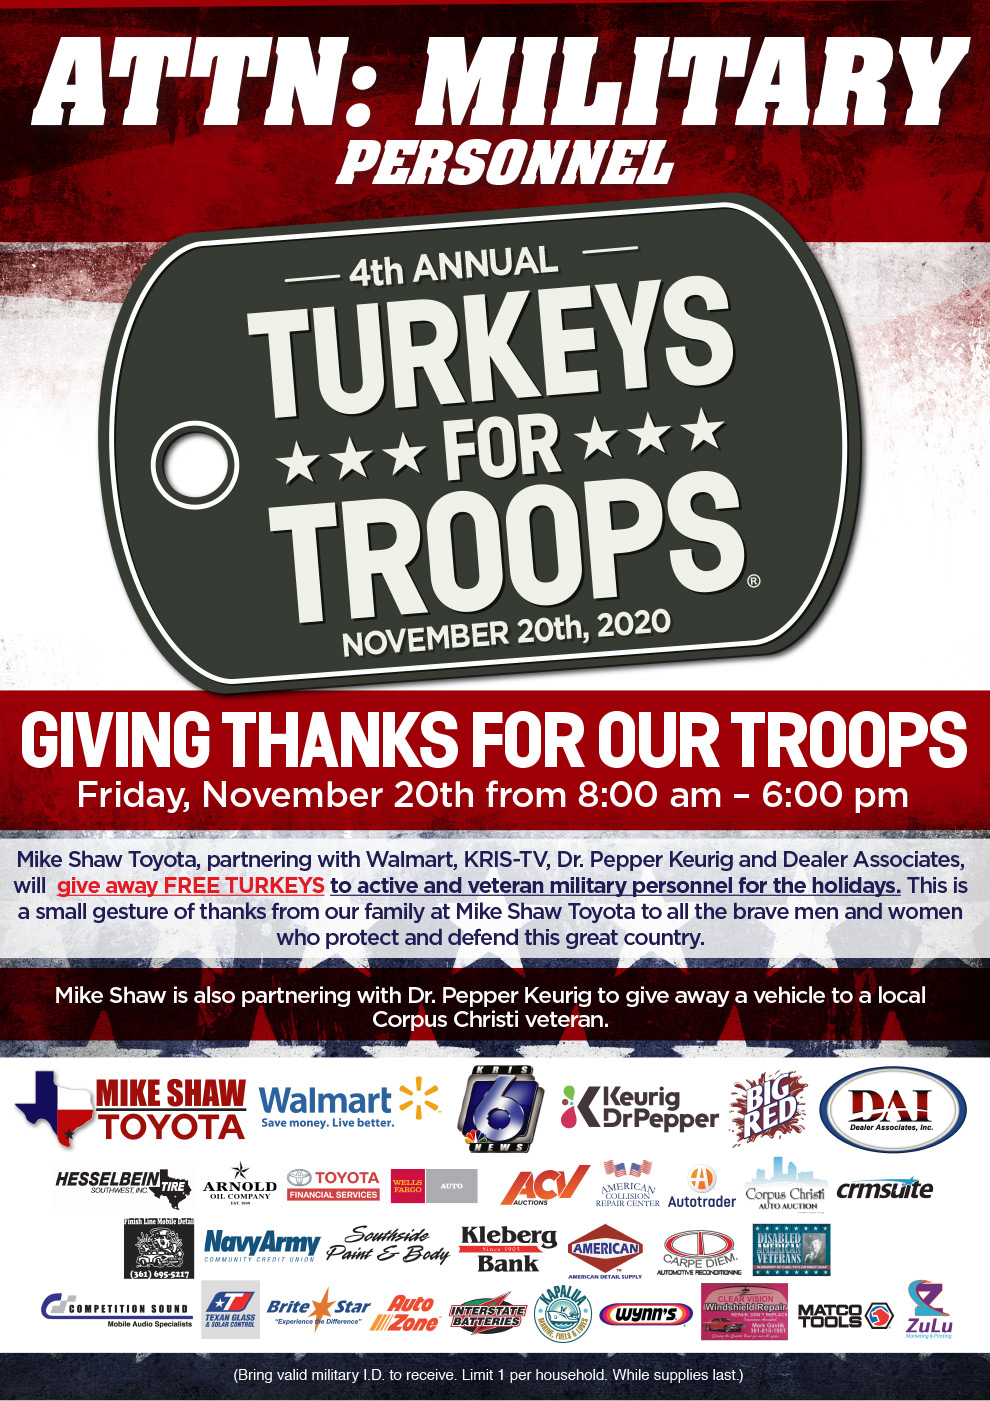 GIVING THANKS FOR OUR TROOPS.Friday, November 20th from 8:00 am - 6:00 pm.Mike Shaw Toyota, partnering with Walmart, KRIS-TV, Dr. Pepper Keurig and Dealer Associates, will  give away FREE TURKEYS to active and veteran military personnel for the holidays. This is a small gesture of thanks from our family at Mike Shaw Toyota to all the brave men and women who protect and defend this great country. Mike Shaw is also partnering with Dr. Pepper Keurig to give away a vehicle to a local Corpus Christi veteran.